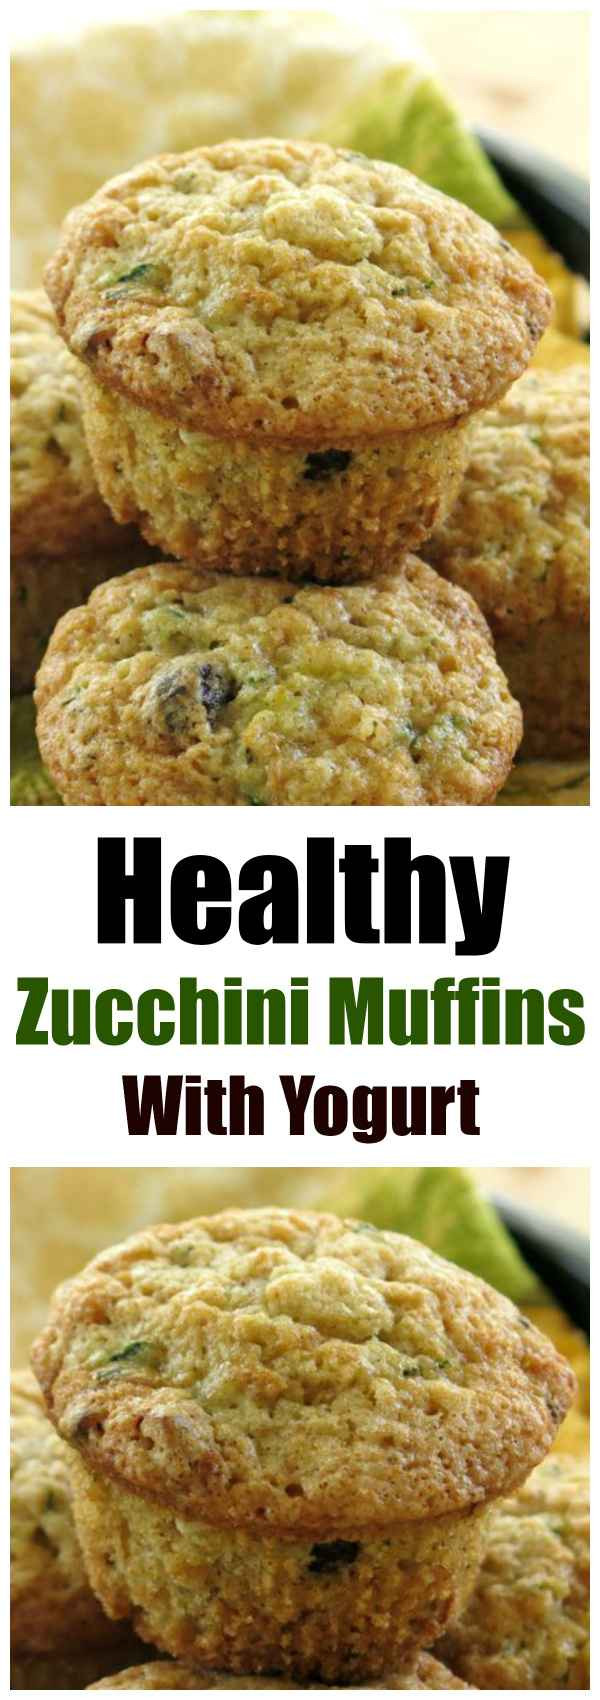 Healthy Zucchini Muffins  Zucchini Muffins Get a Healthy Makeover The Dinner Mom